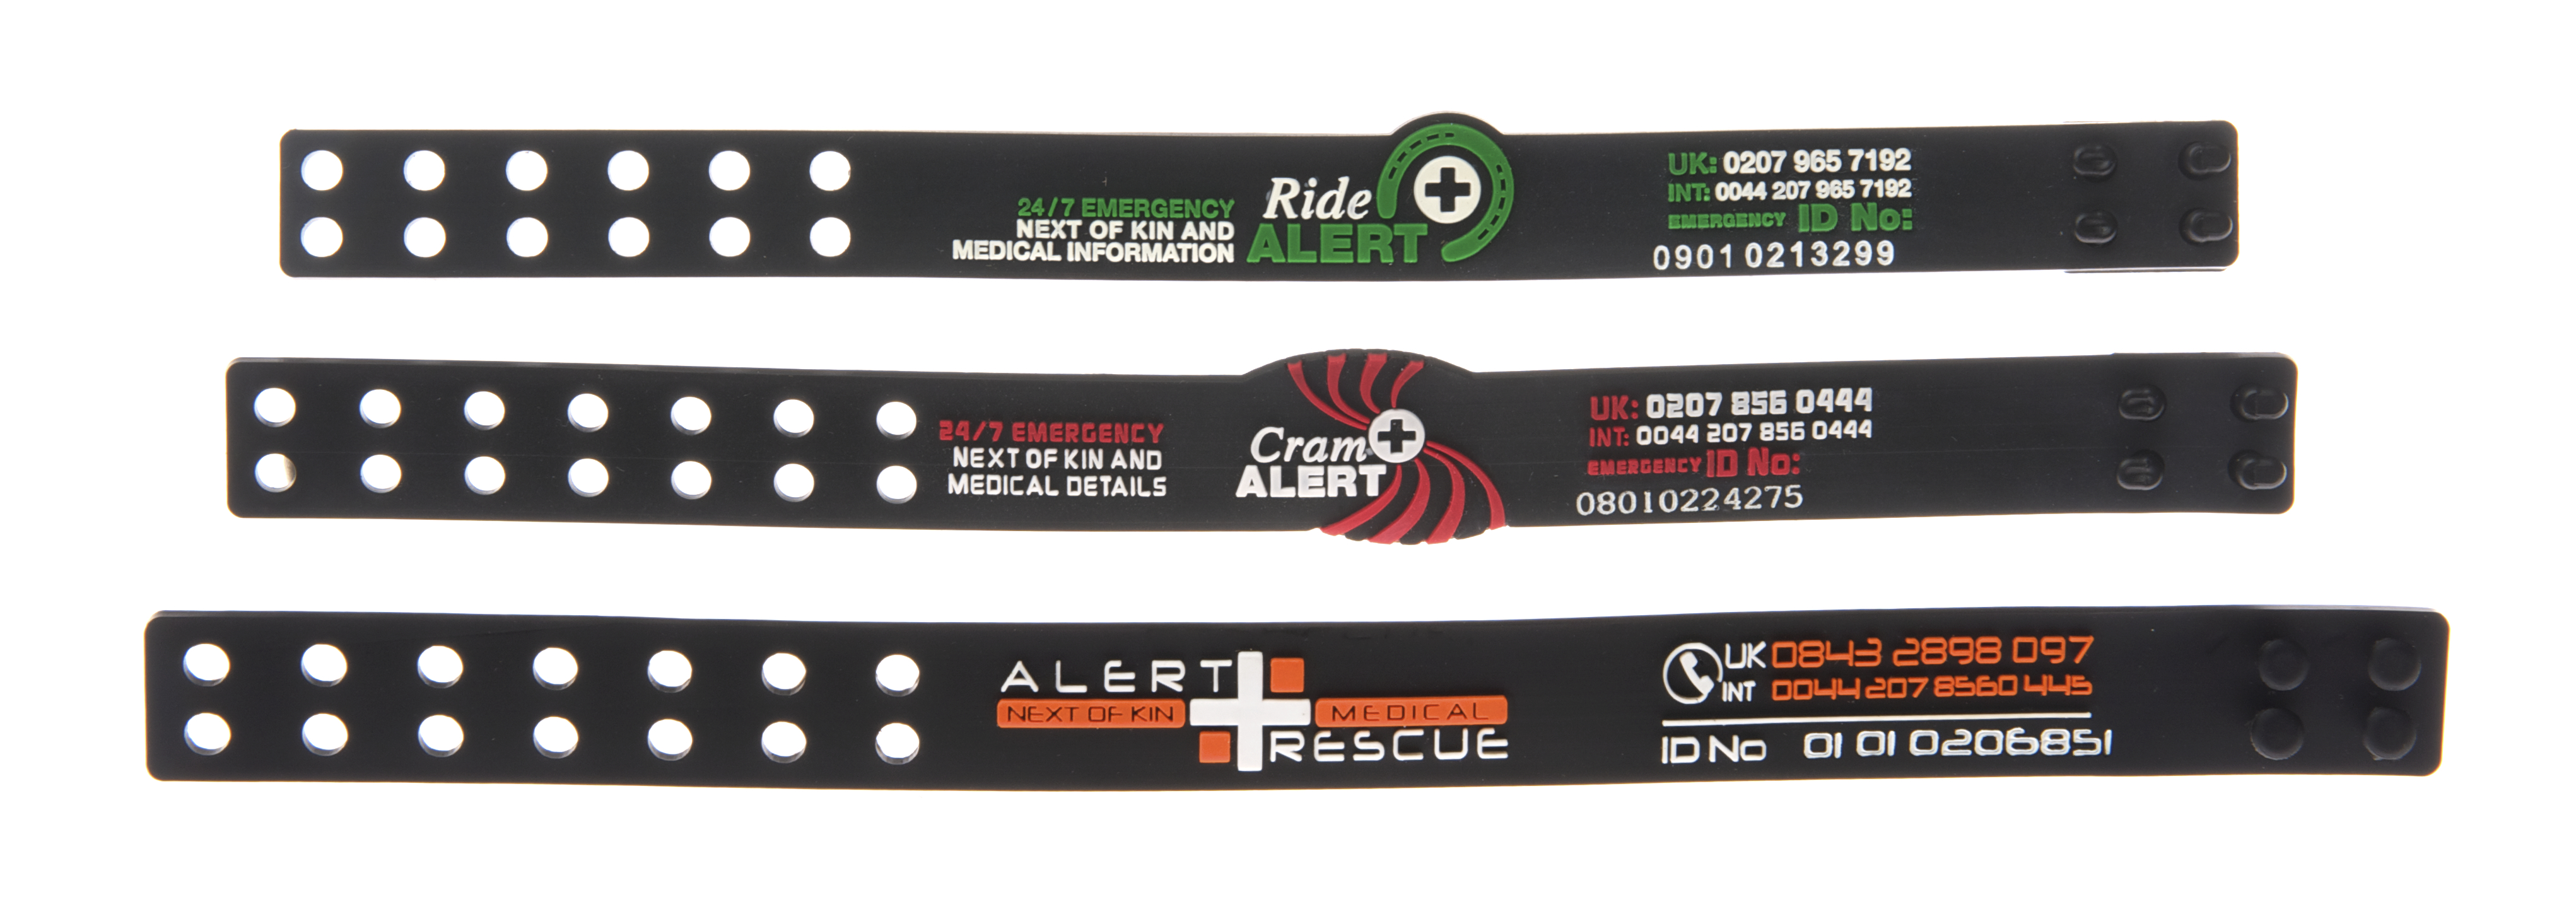 Bespoke PVC wristbands